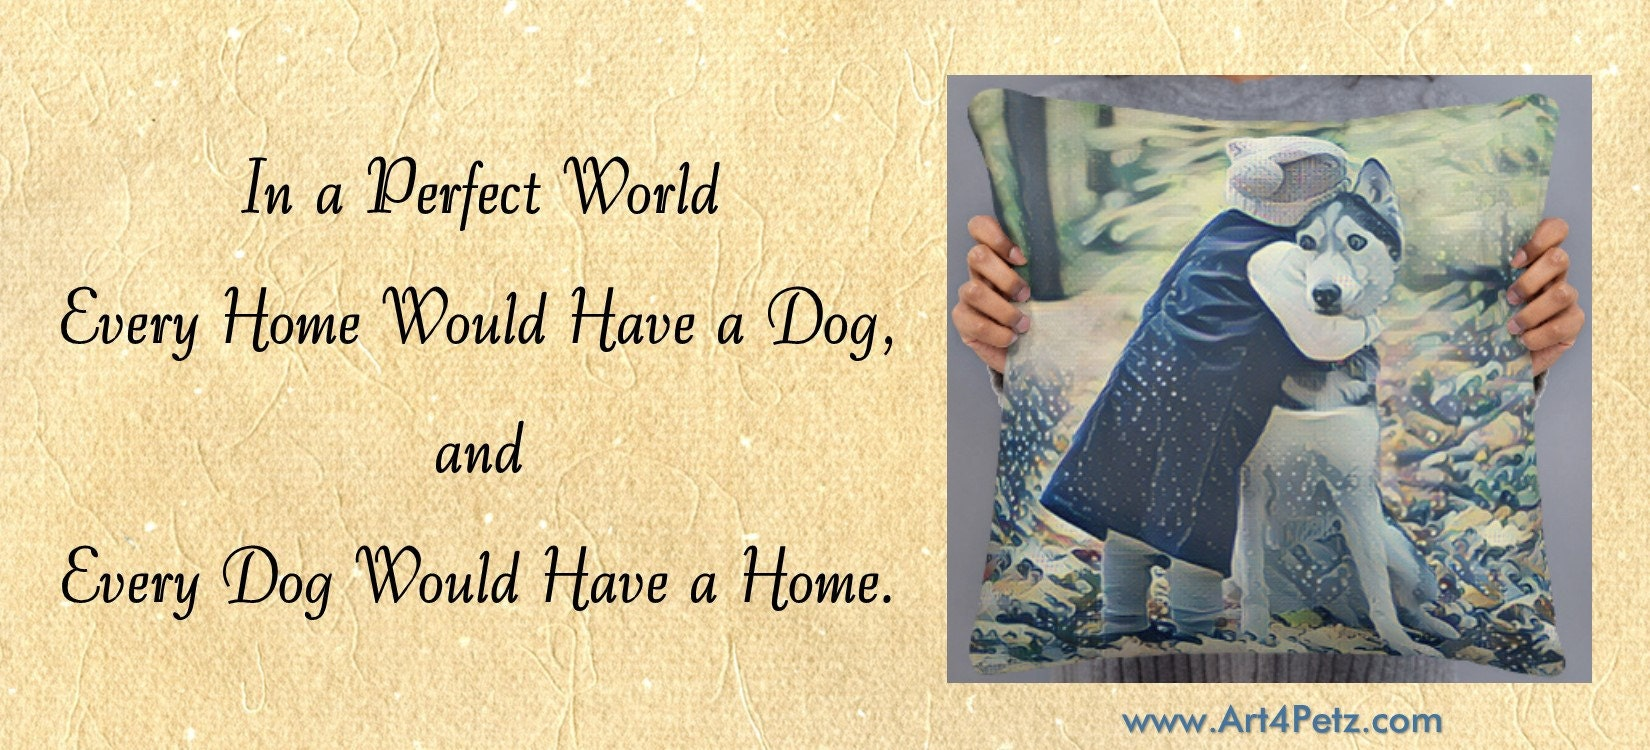 In a perfect world, every home would have a dog, and every dog would have a home